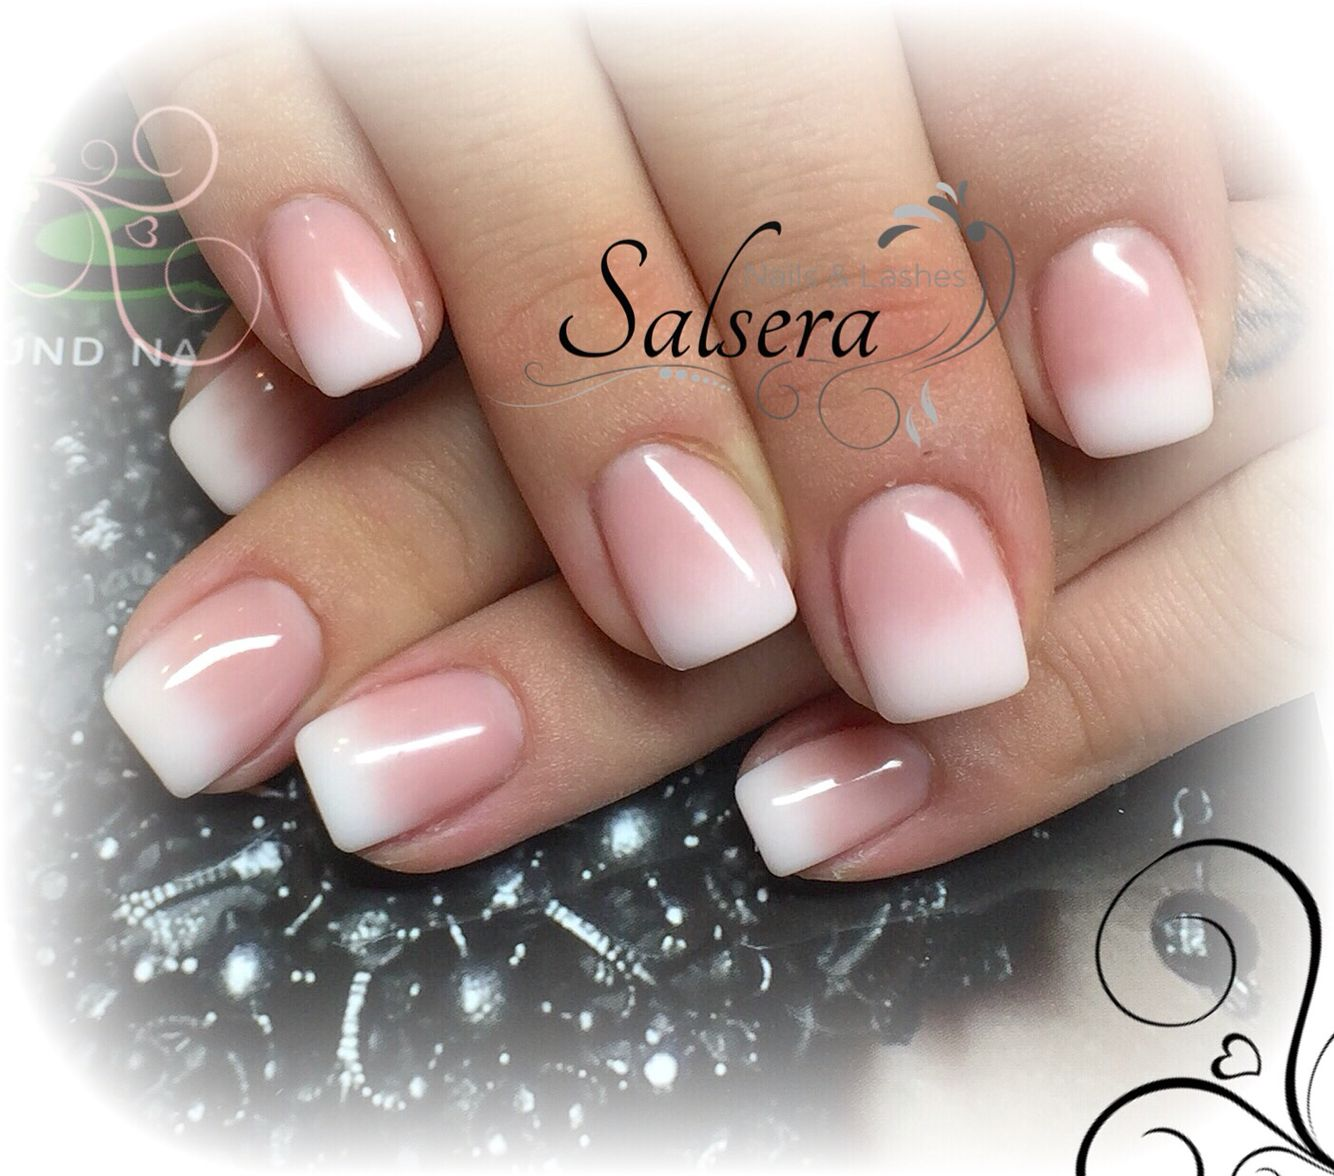 Magnificent French Ombre Gel Nails Illustration - Nail Art Ideas ...